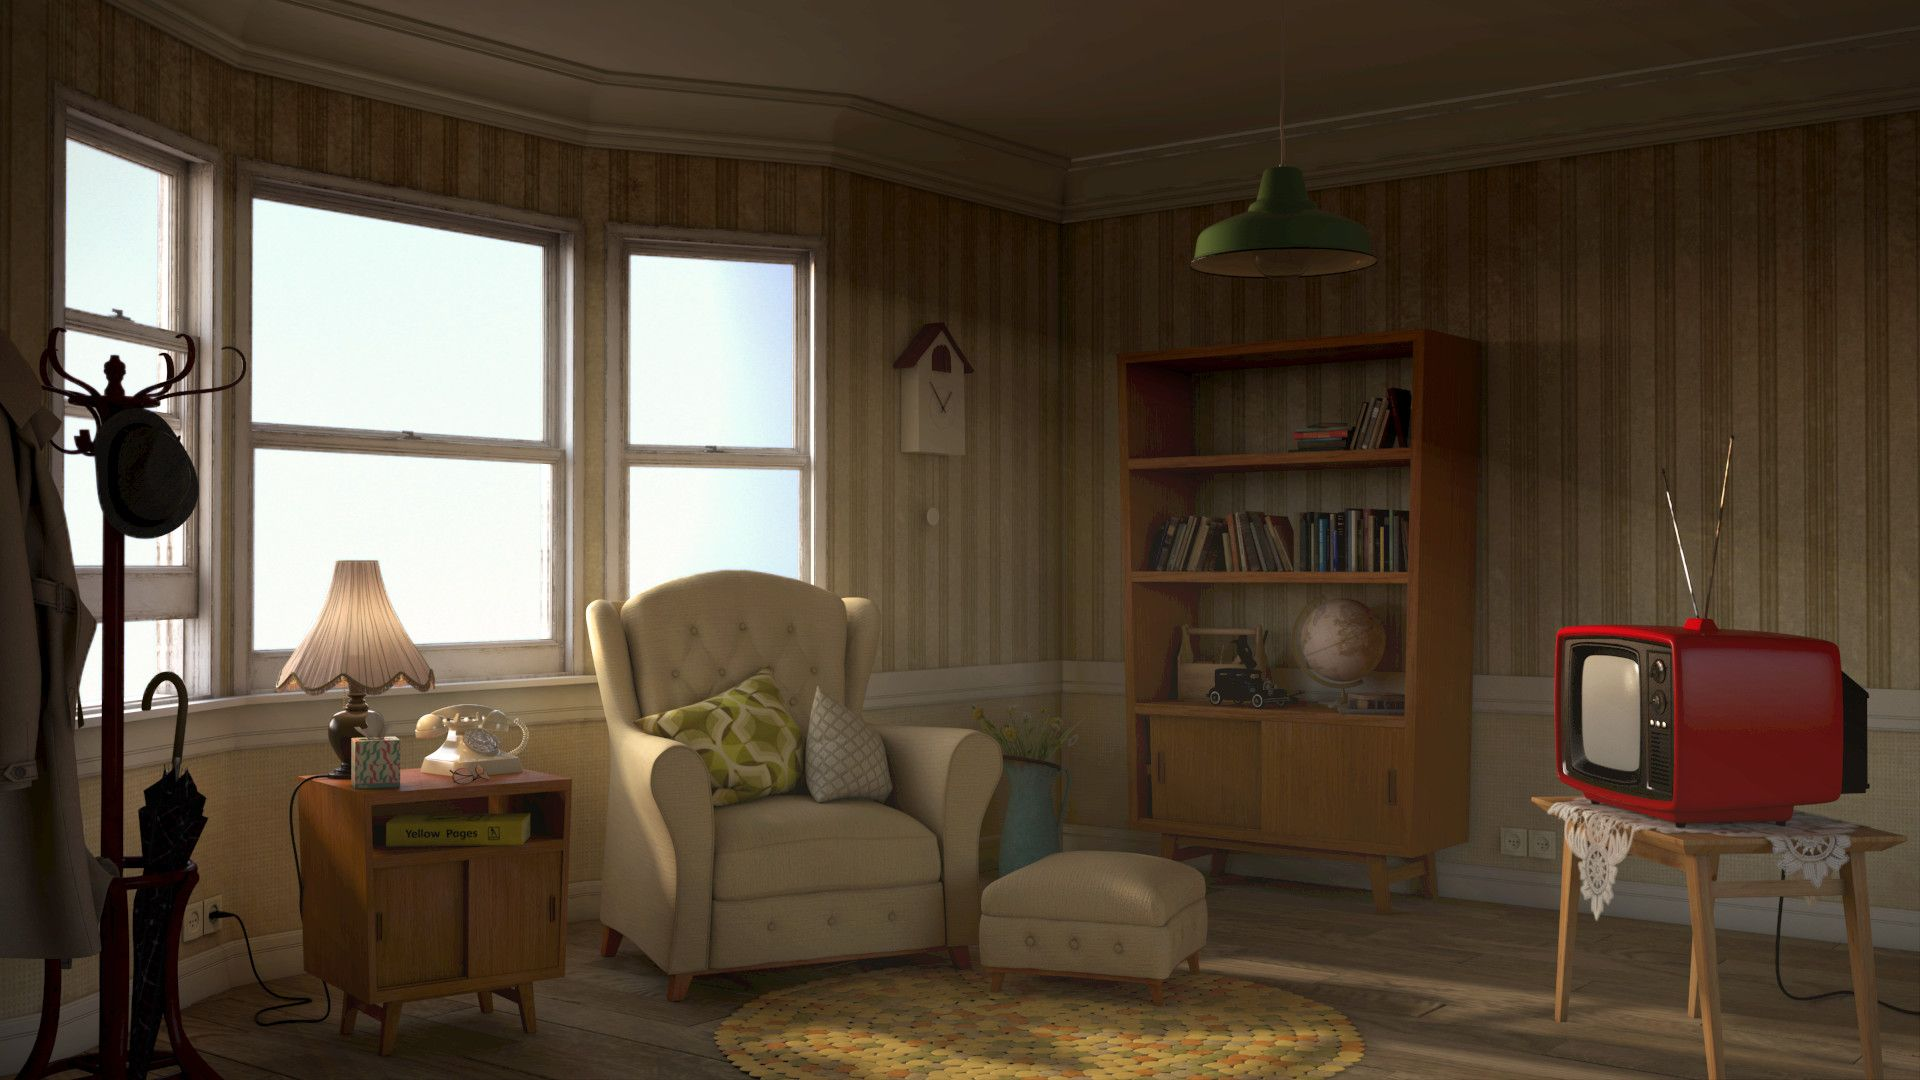 Living Room Background For The Chime Animation By Hjeojeo Anime Background Living Room Background Cartoon Background